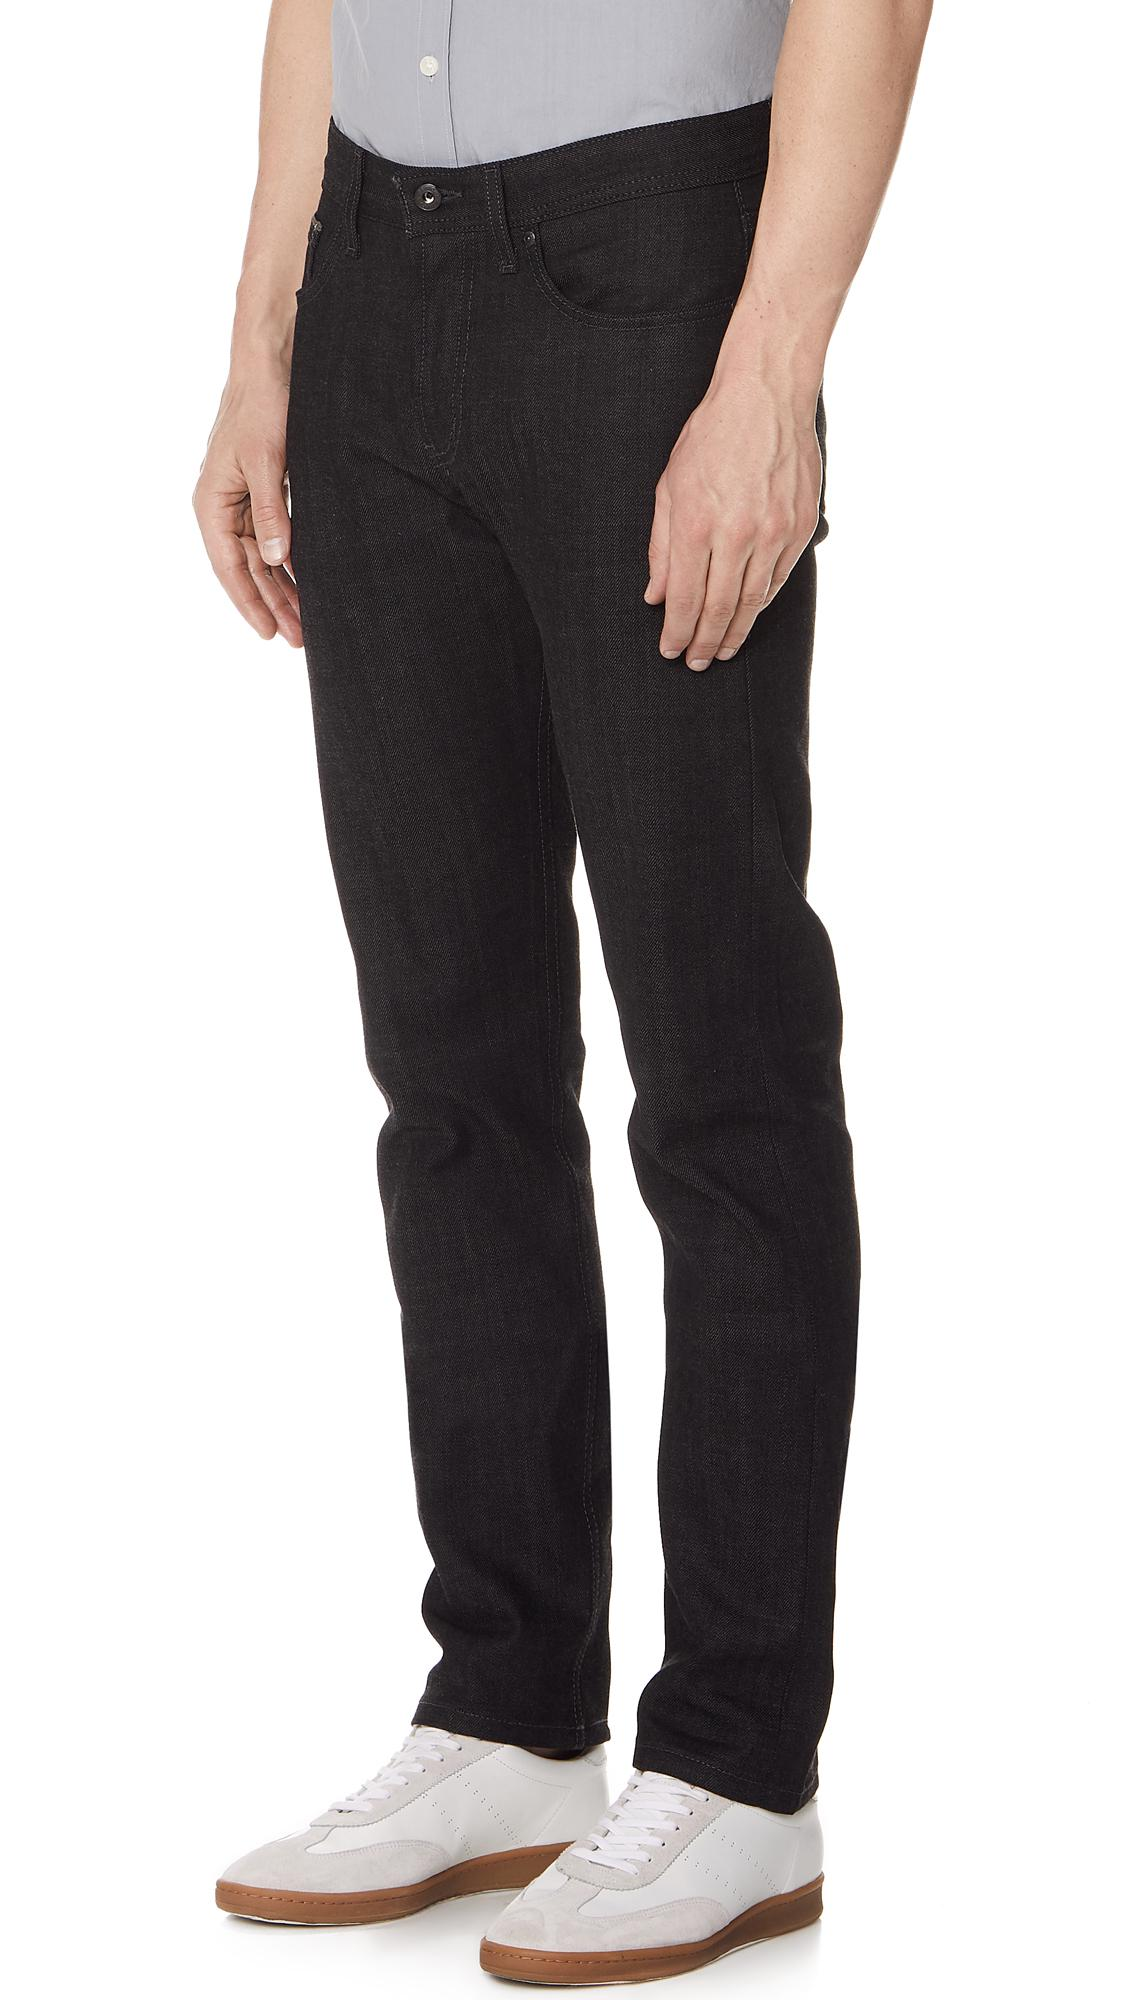 Naked & Famous Denim Weird Guy Jeans in Black/Grey (Black) for Men